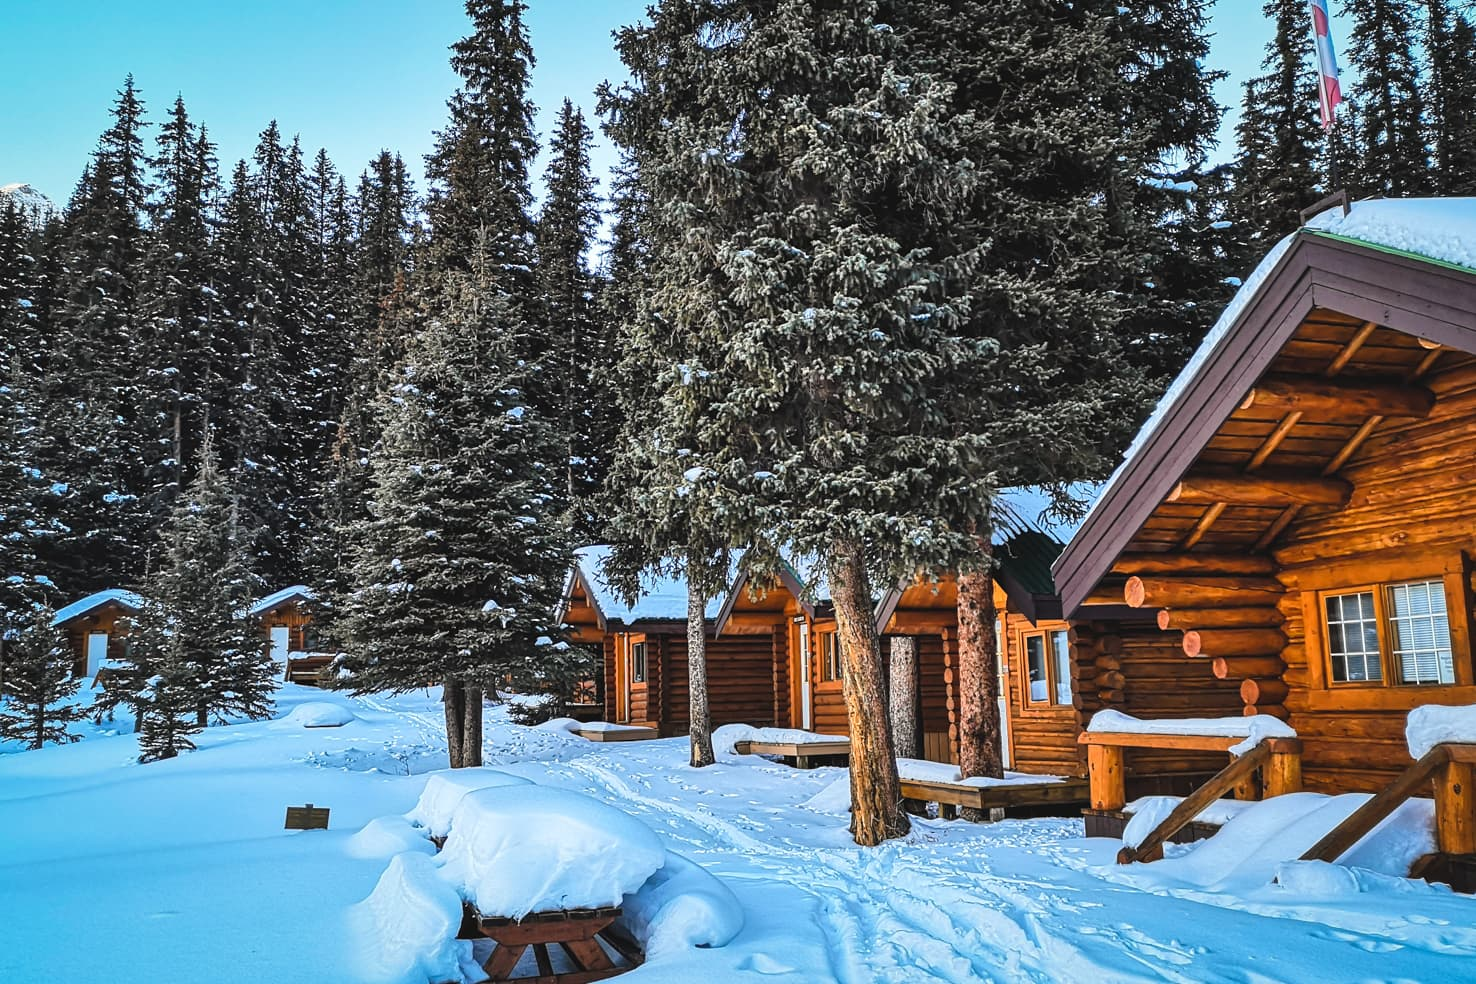 Things to do in Jasper National Park - 34 Stay in a rustic log cabin